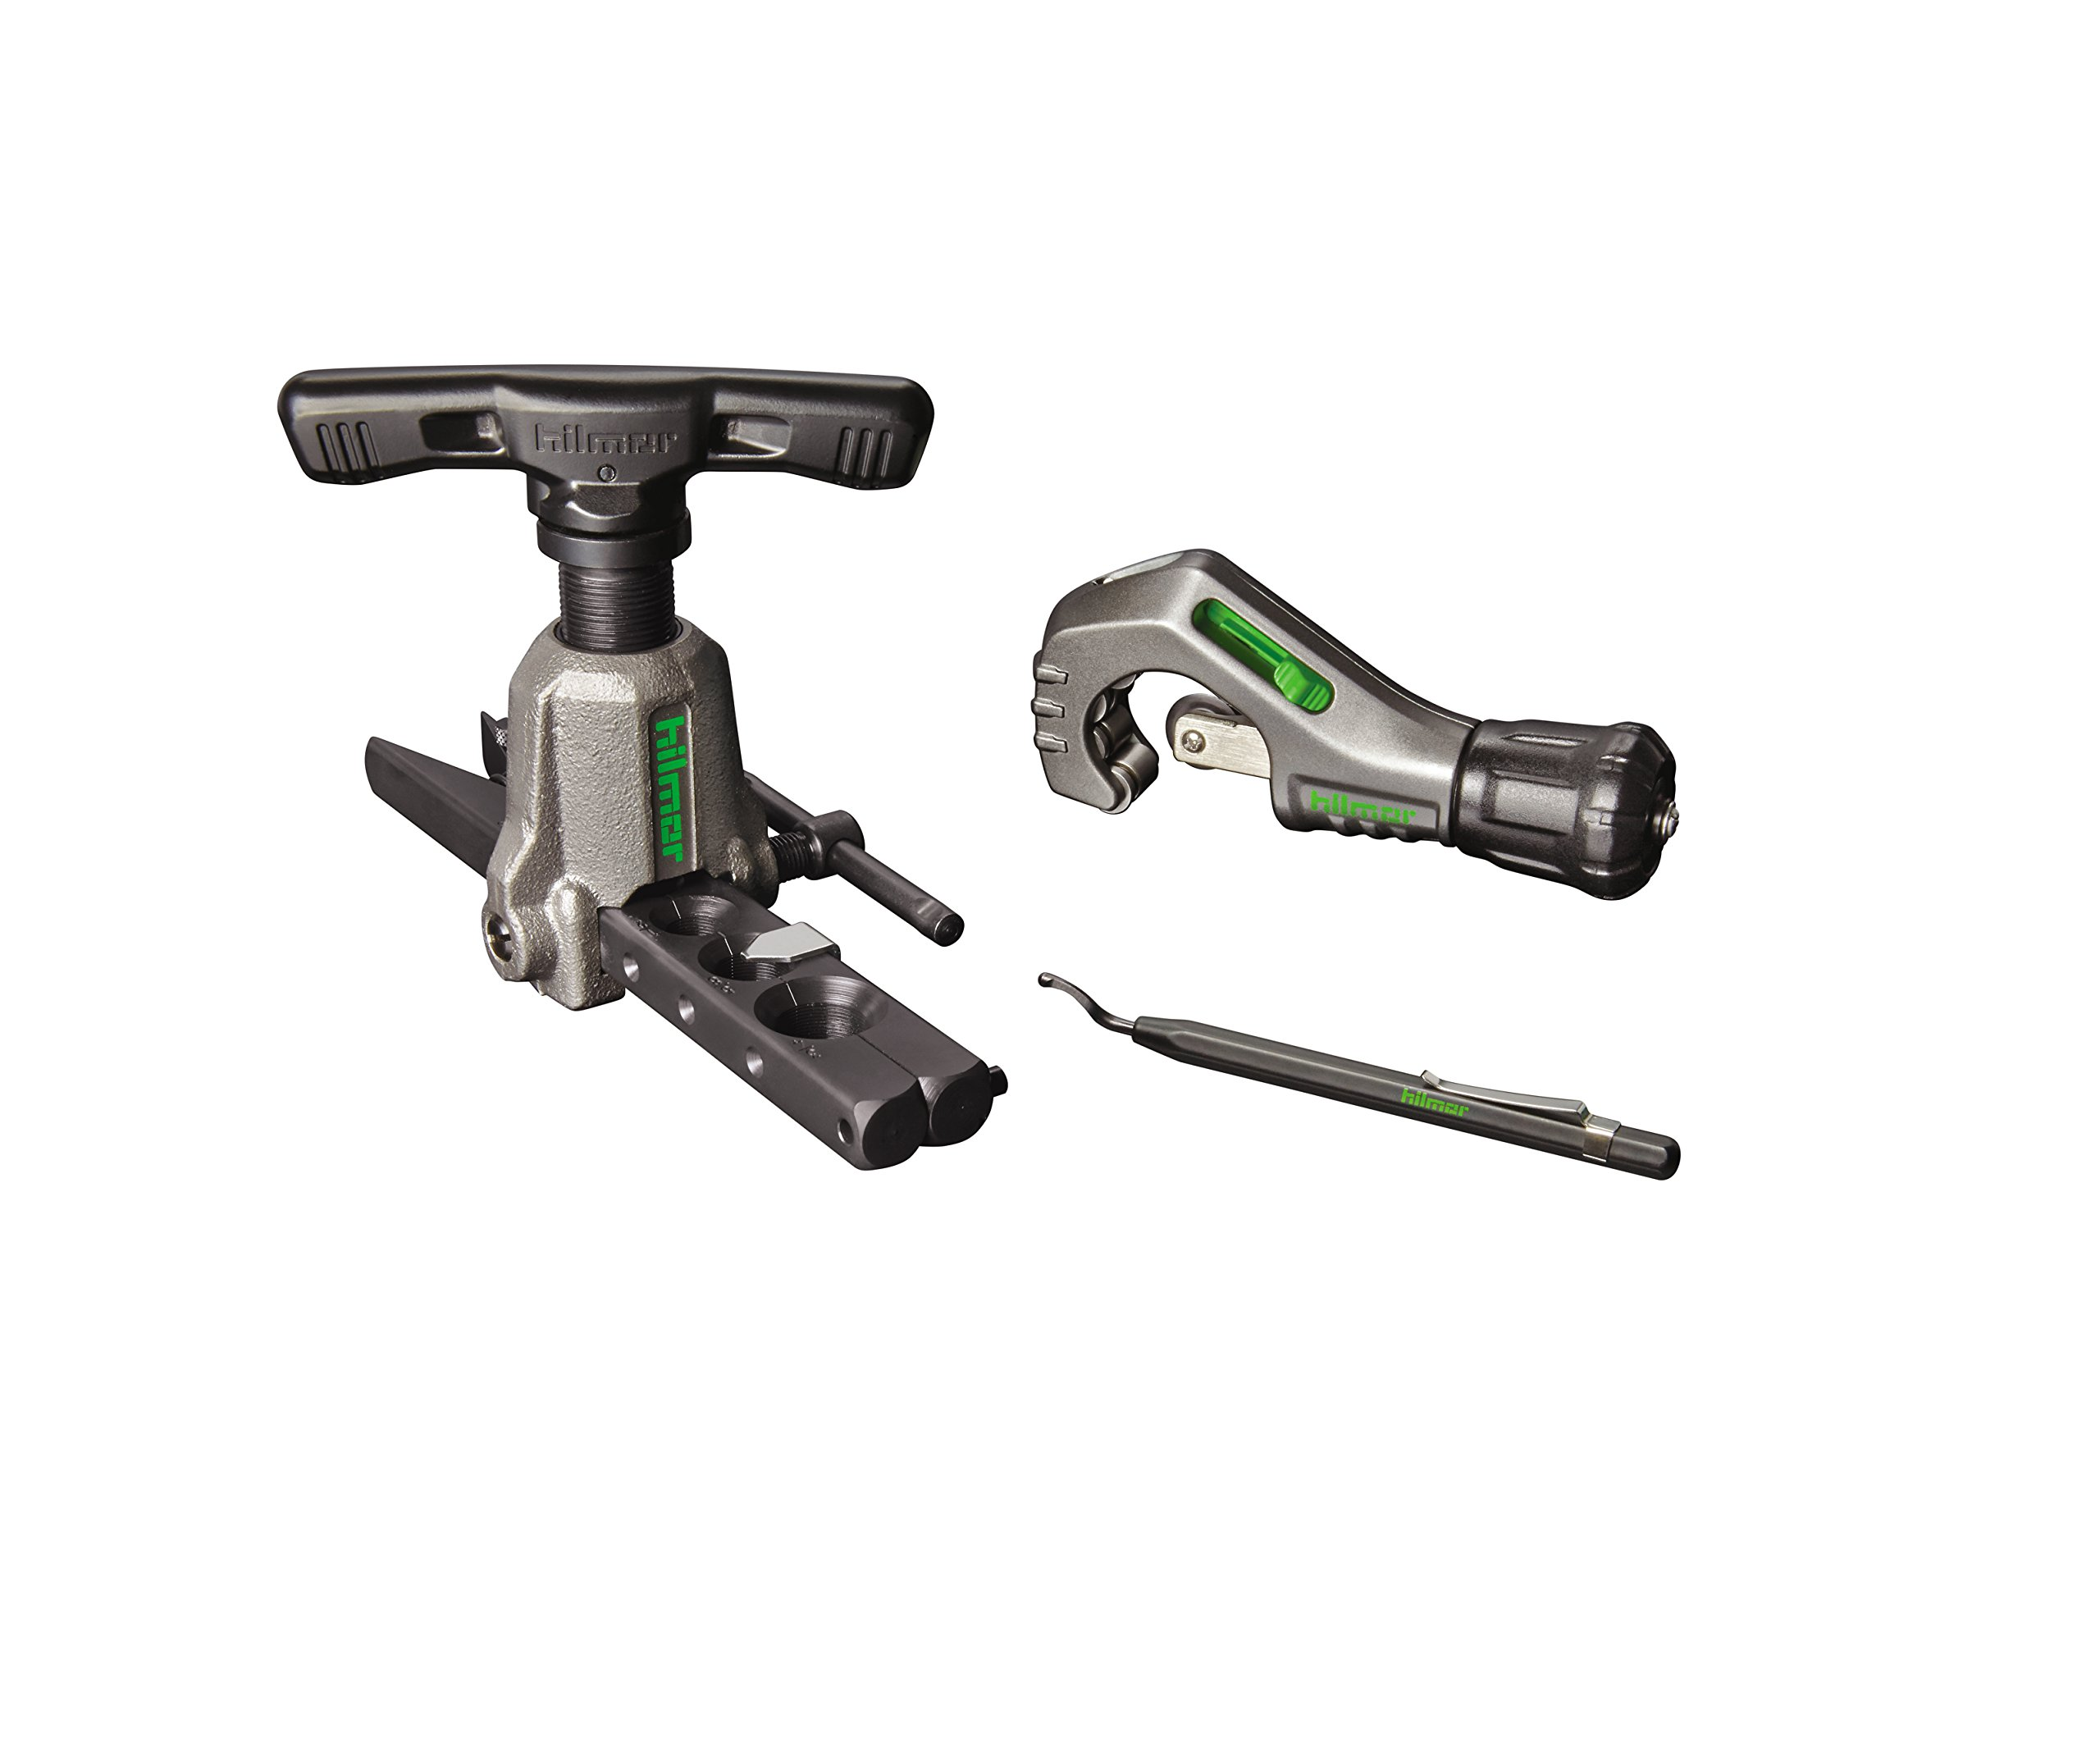 Hilmor 1937685 Orbital Flare Kit with Tubing Cutter and Deburring Tool by Hilmor